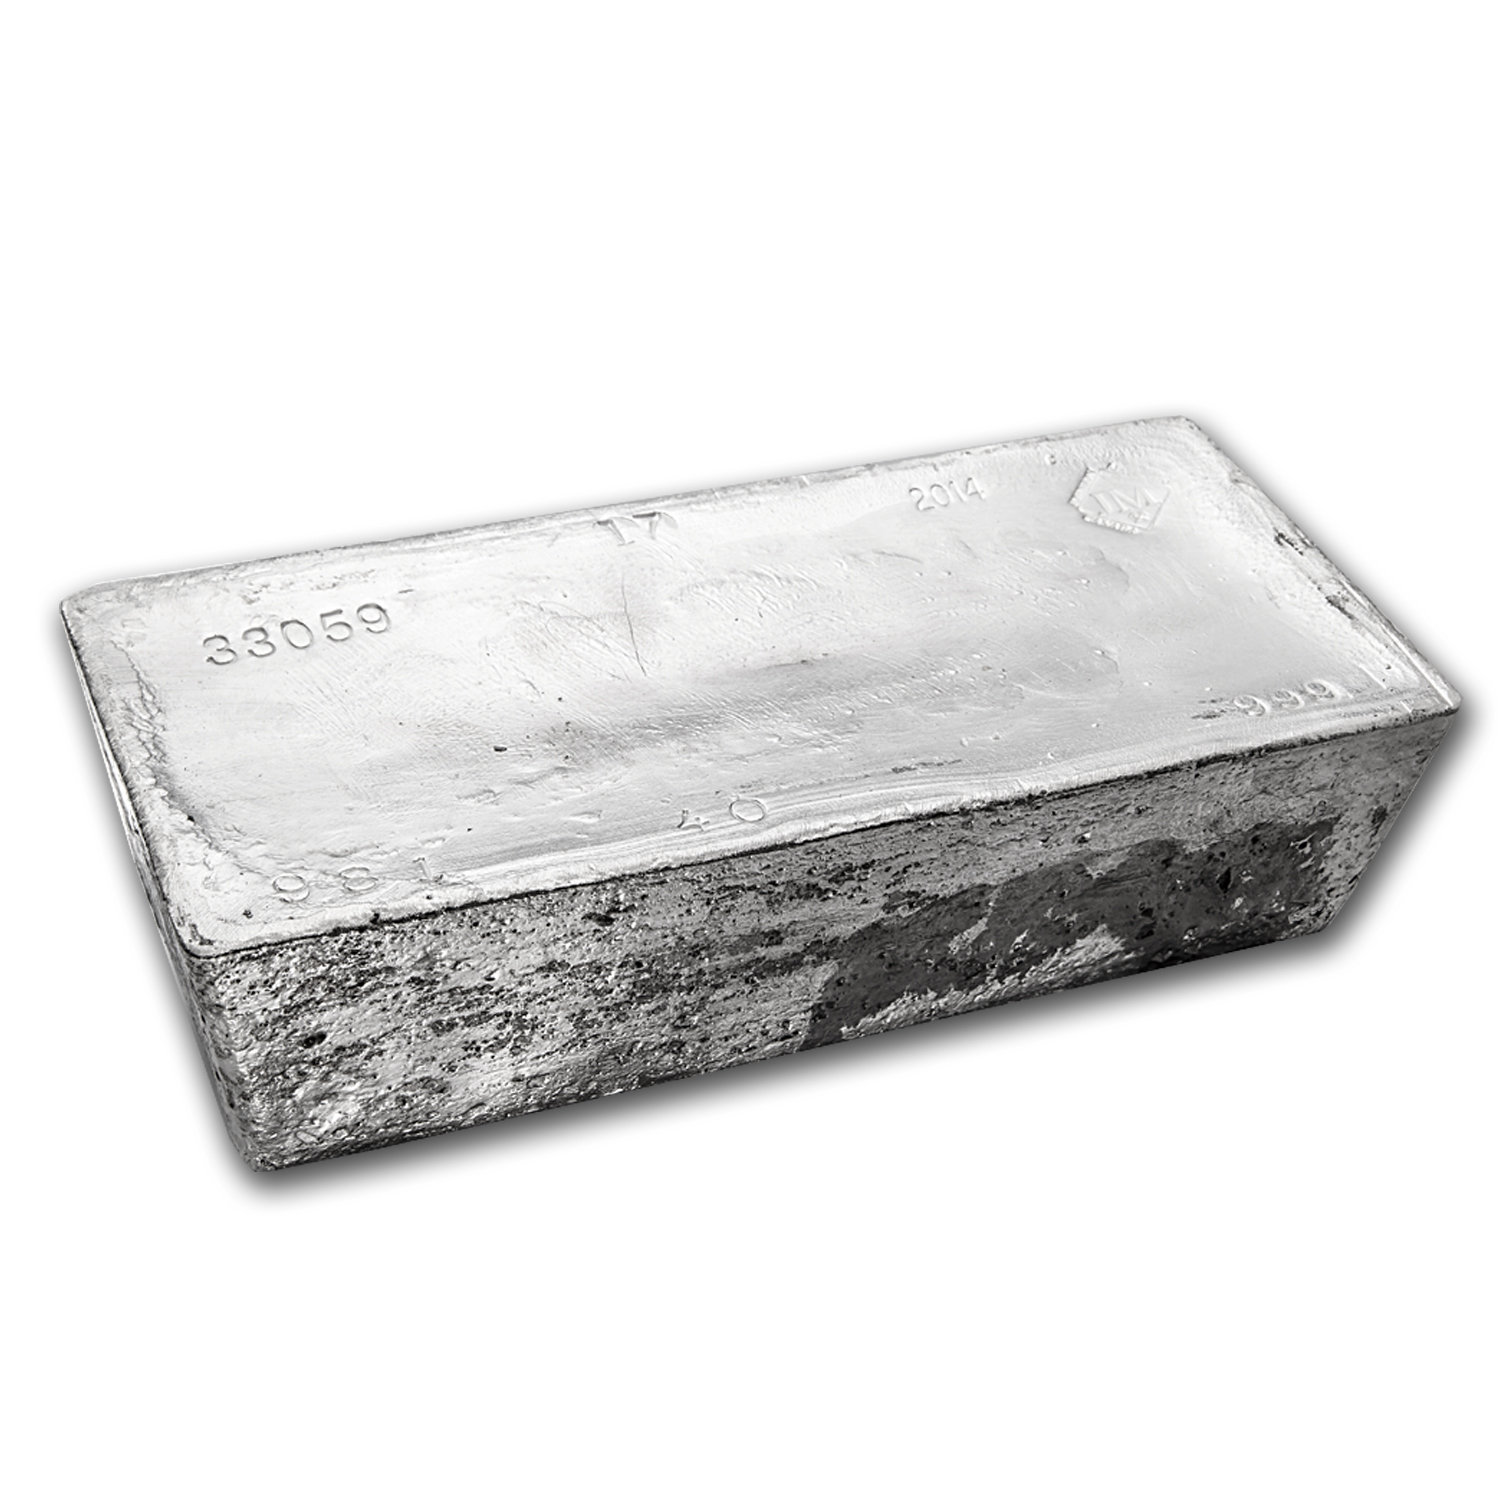 1023.00 oz Silver Bar - Johnson Matthey